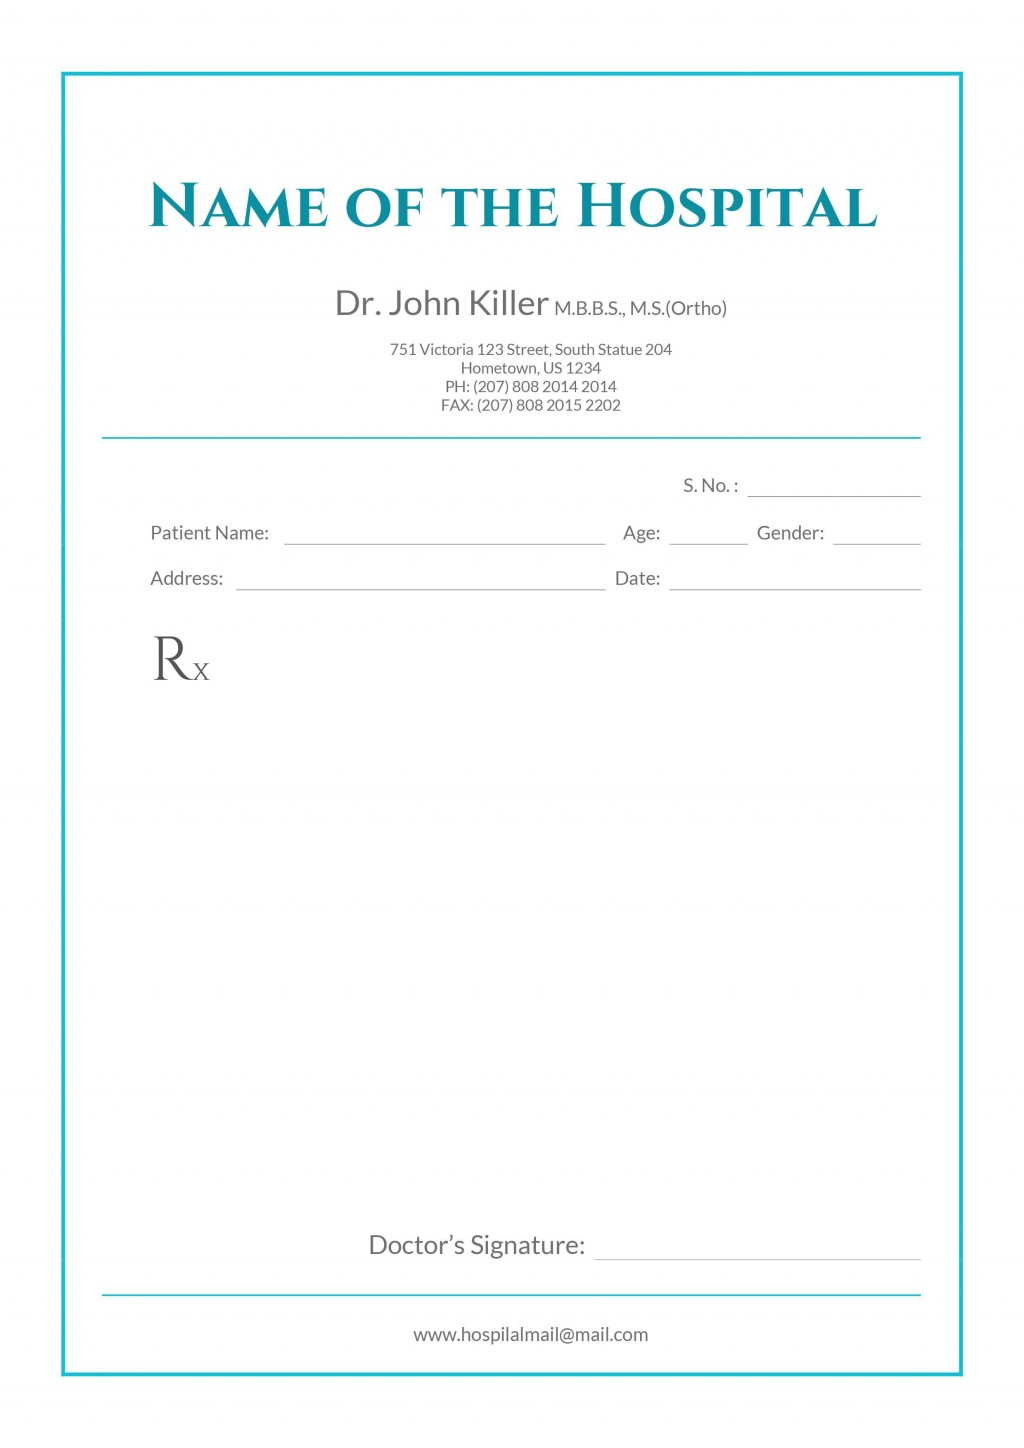 001 Phenomenal Doctor Note Template Word High Resolution  Fake Document For WorkLarge